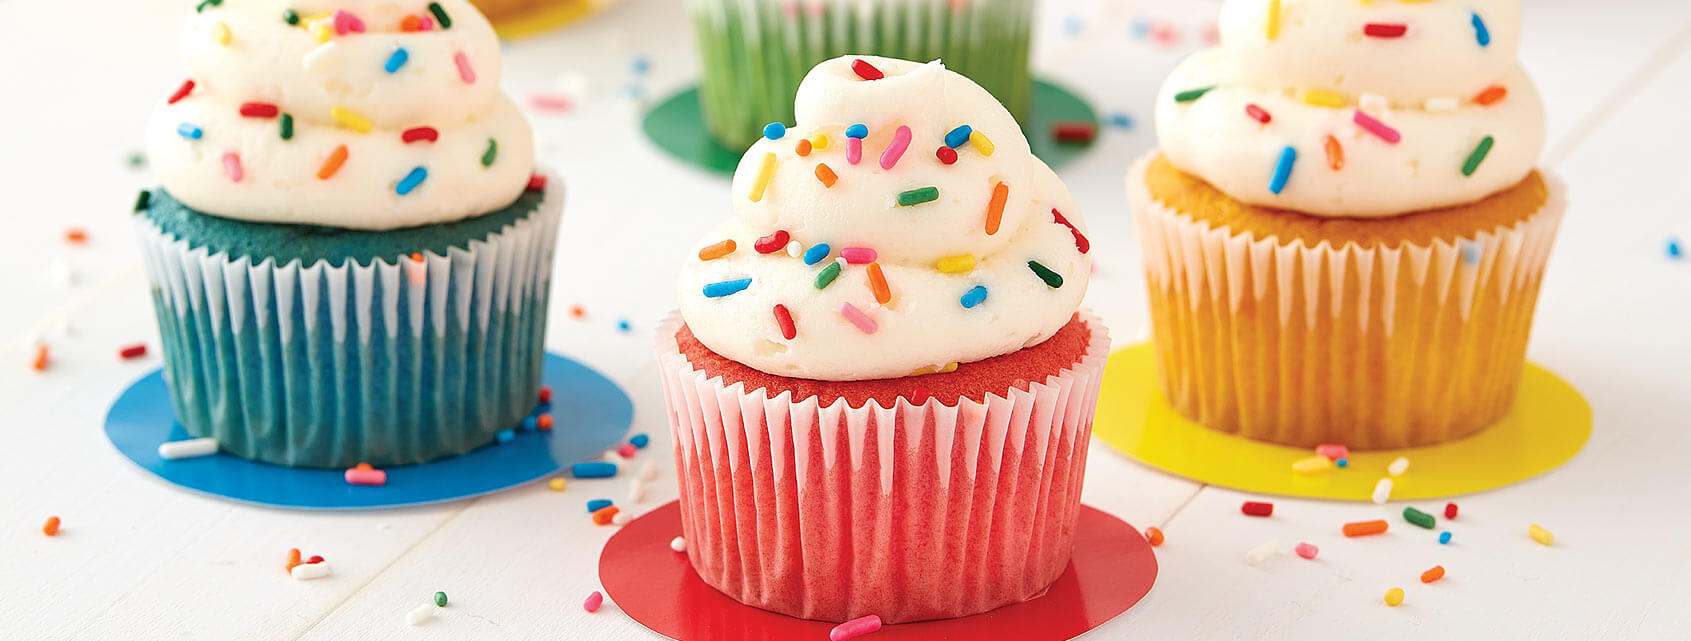 couples-meals-rainbow-cupcakes.jpg